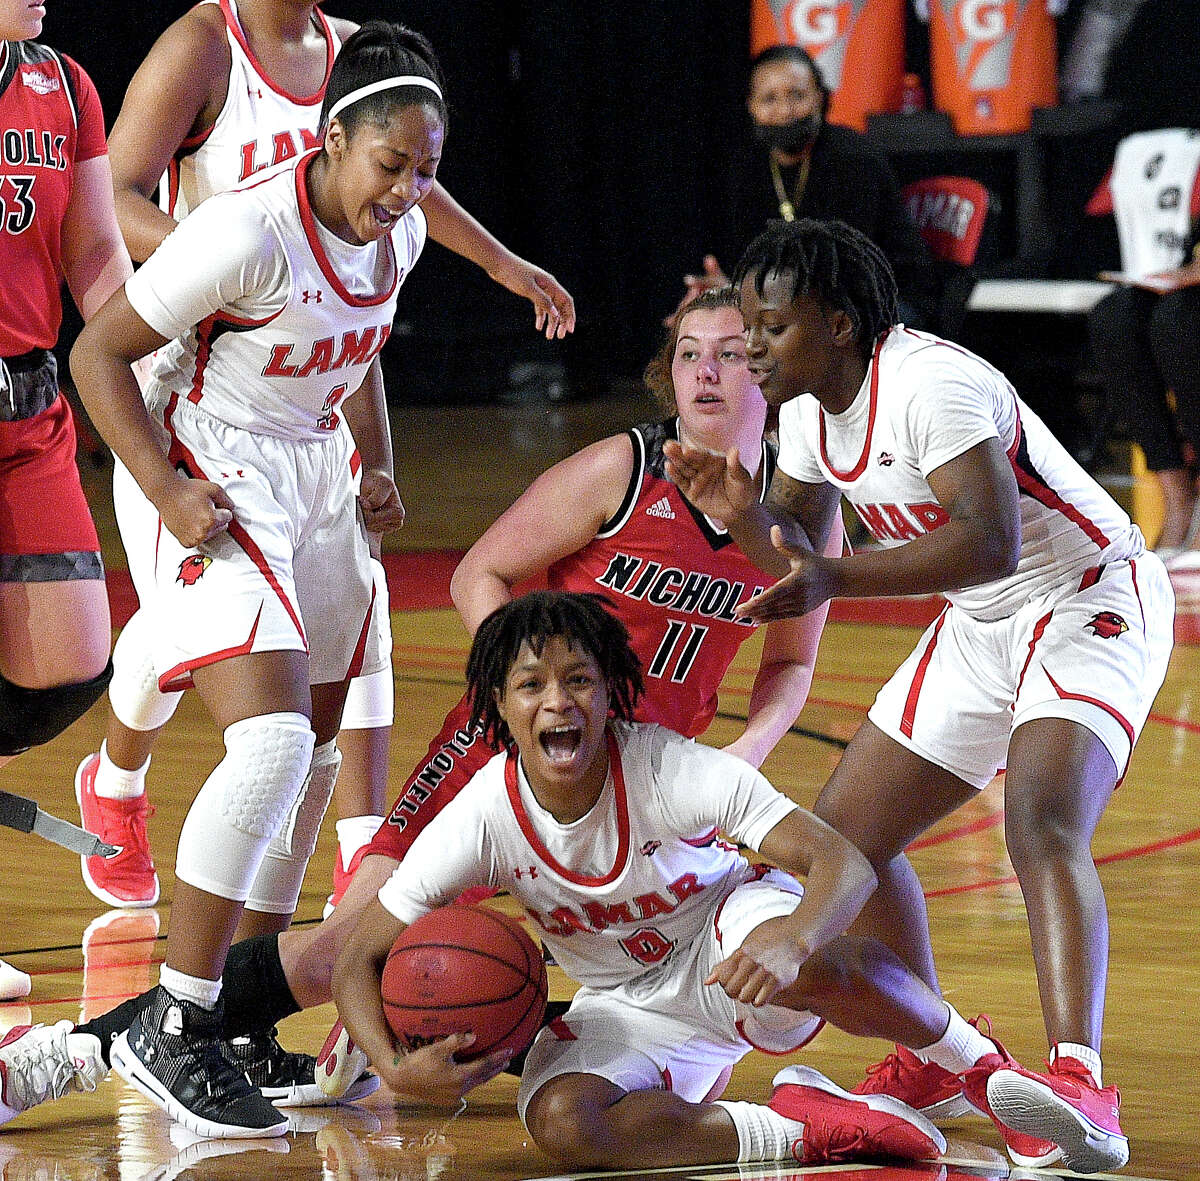 Lamar's Kayla Mitchell celebrates after forcing the turnover as they take on Nicholls State in their Southland Conference game opener at the Montagne Center Wednesday. Photo taken Wednesday, January 6, 2021 Kim Brent/The Enterprise